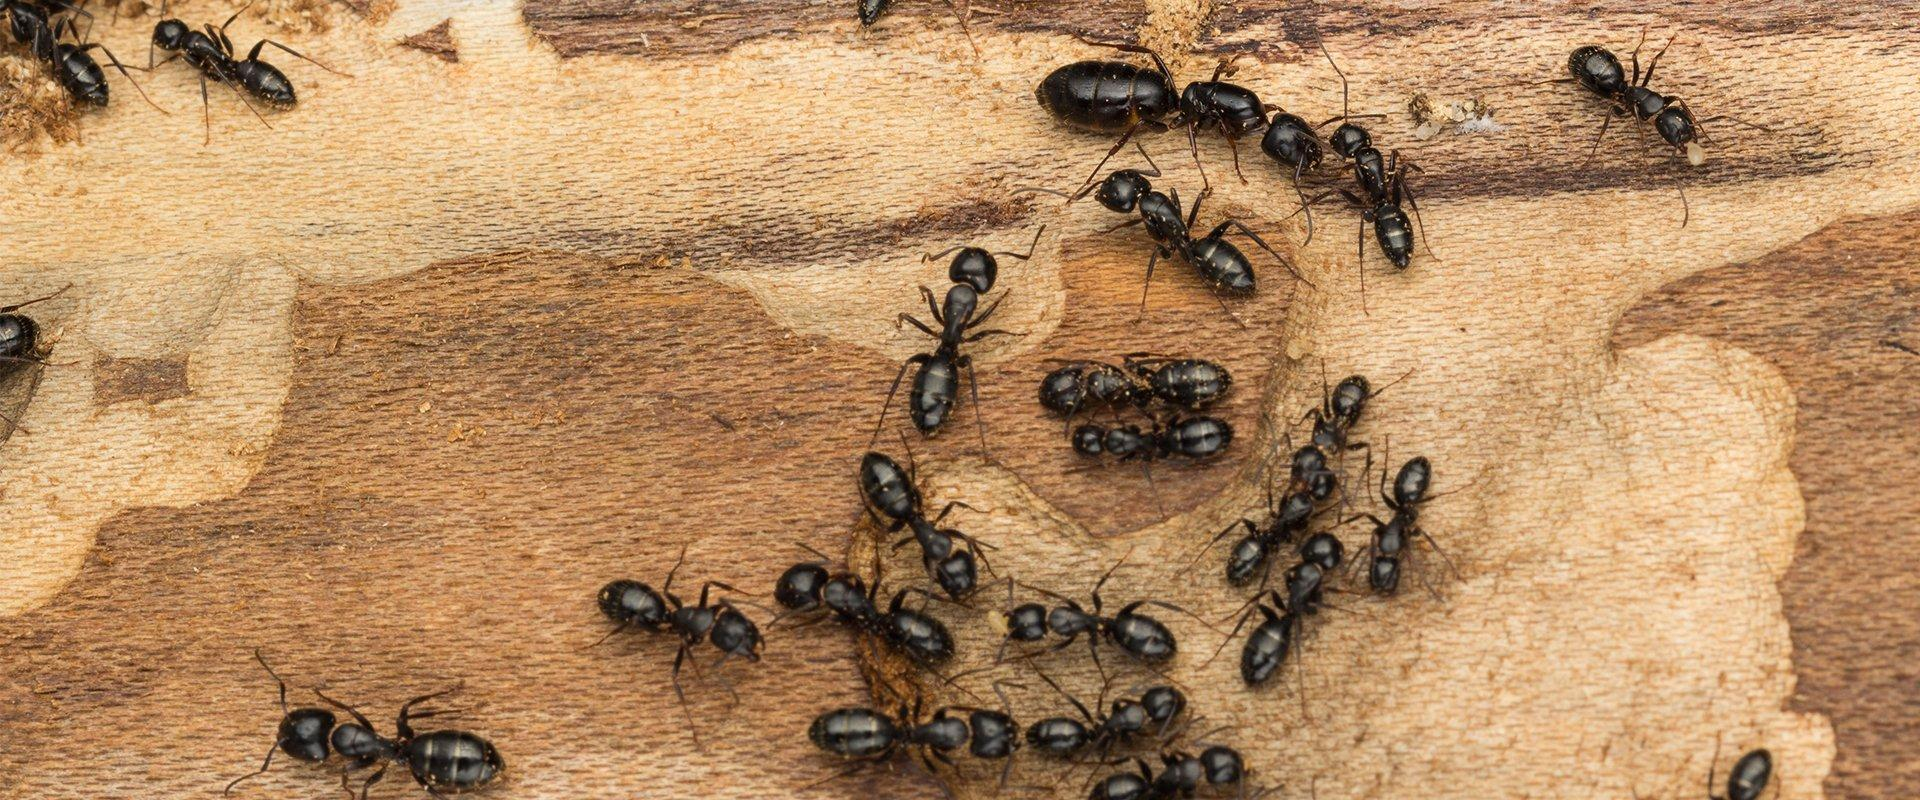 carpenter ants crawling around on wood they have damaged